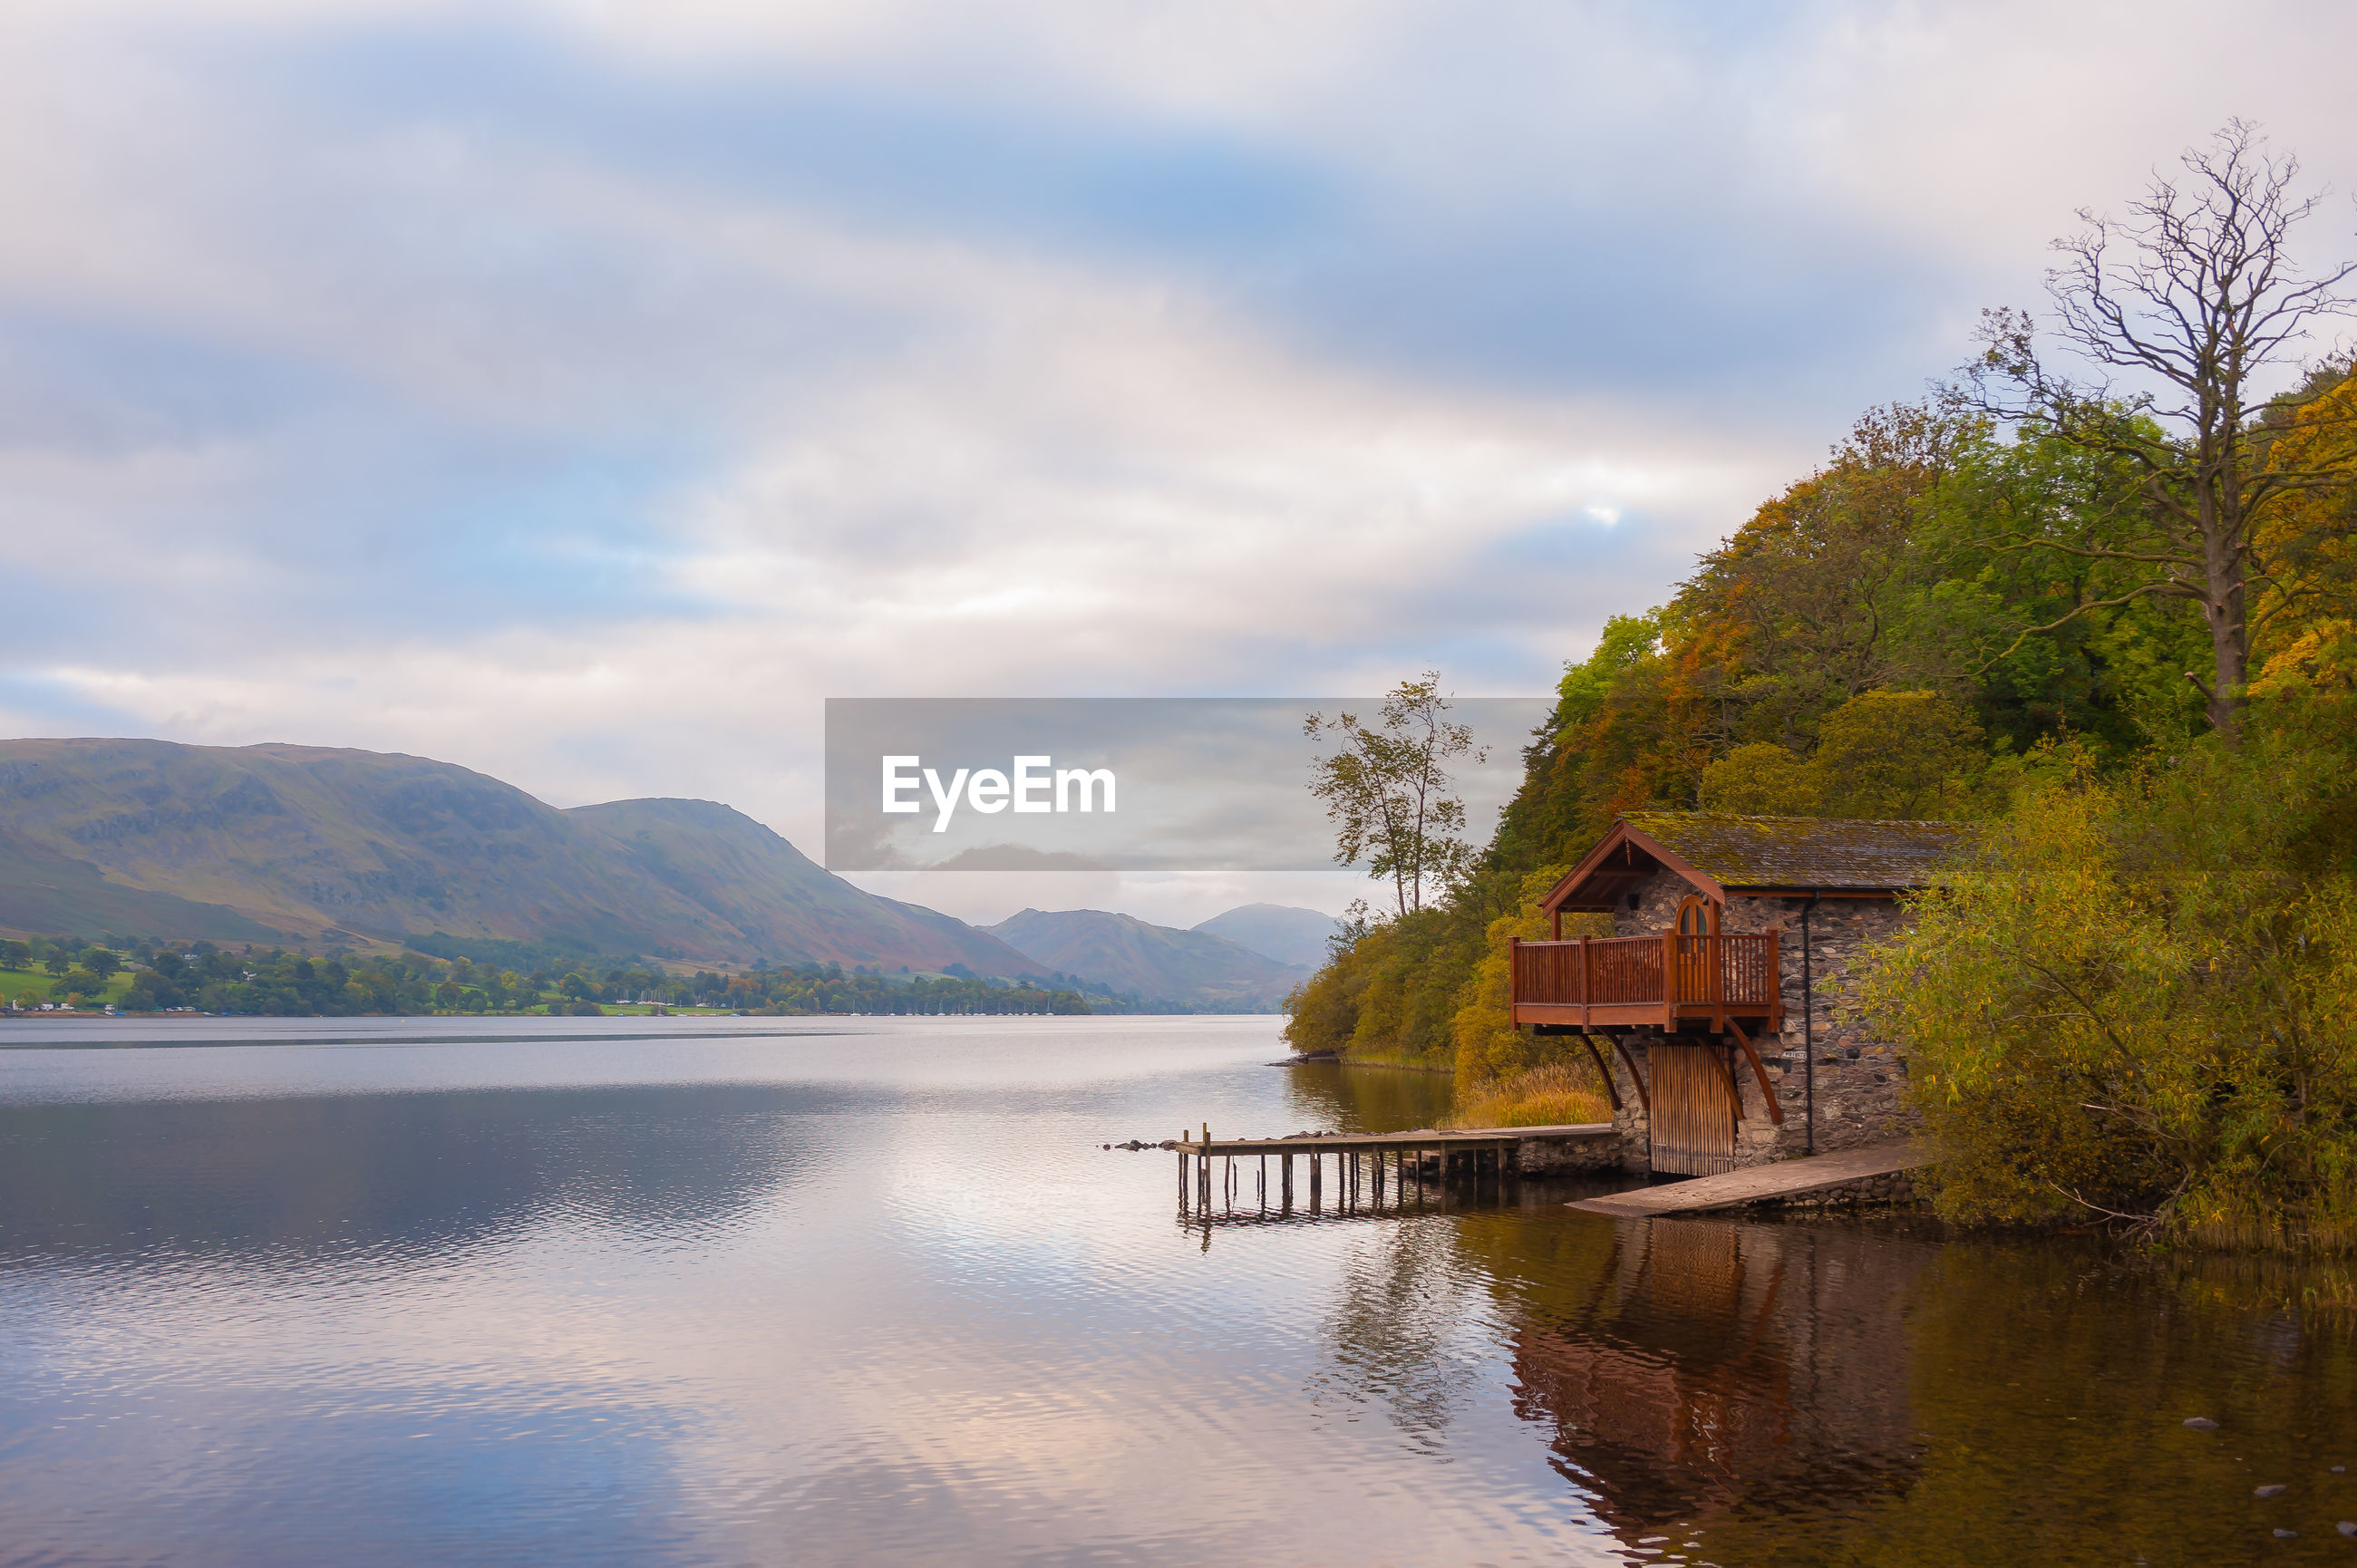 SCENIC VIEW OF LAKE AND HOUSE AGAINST SKY